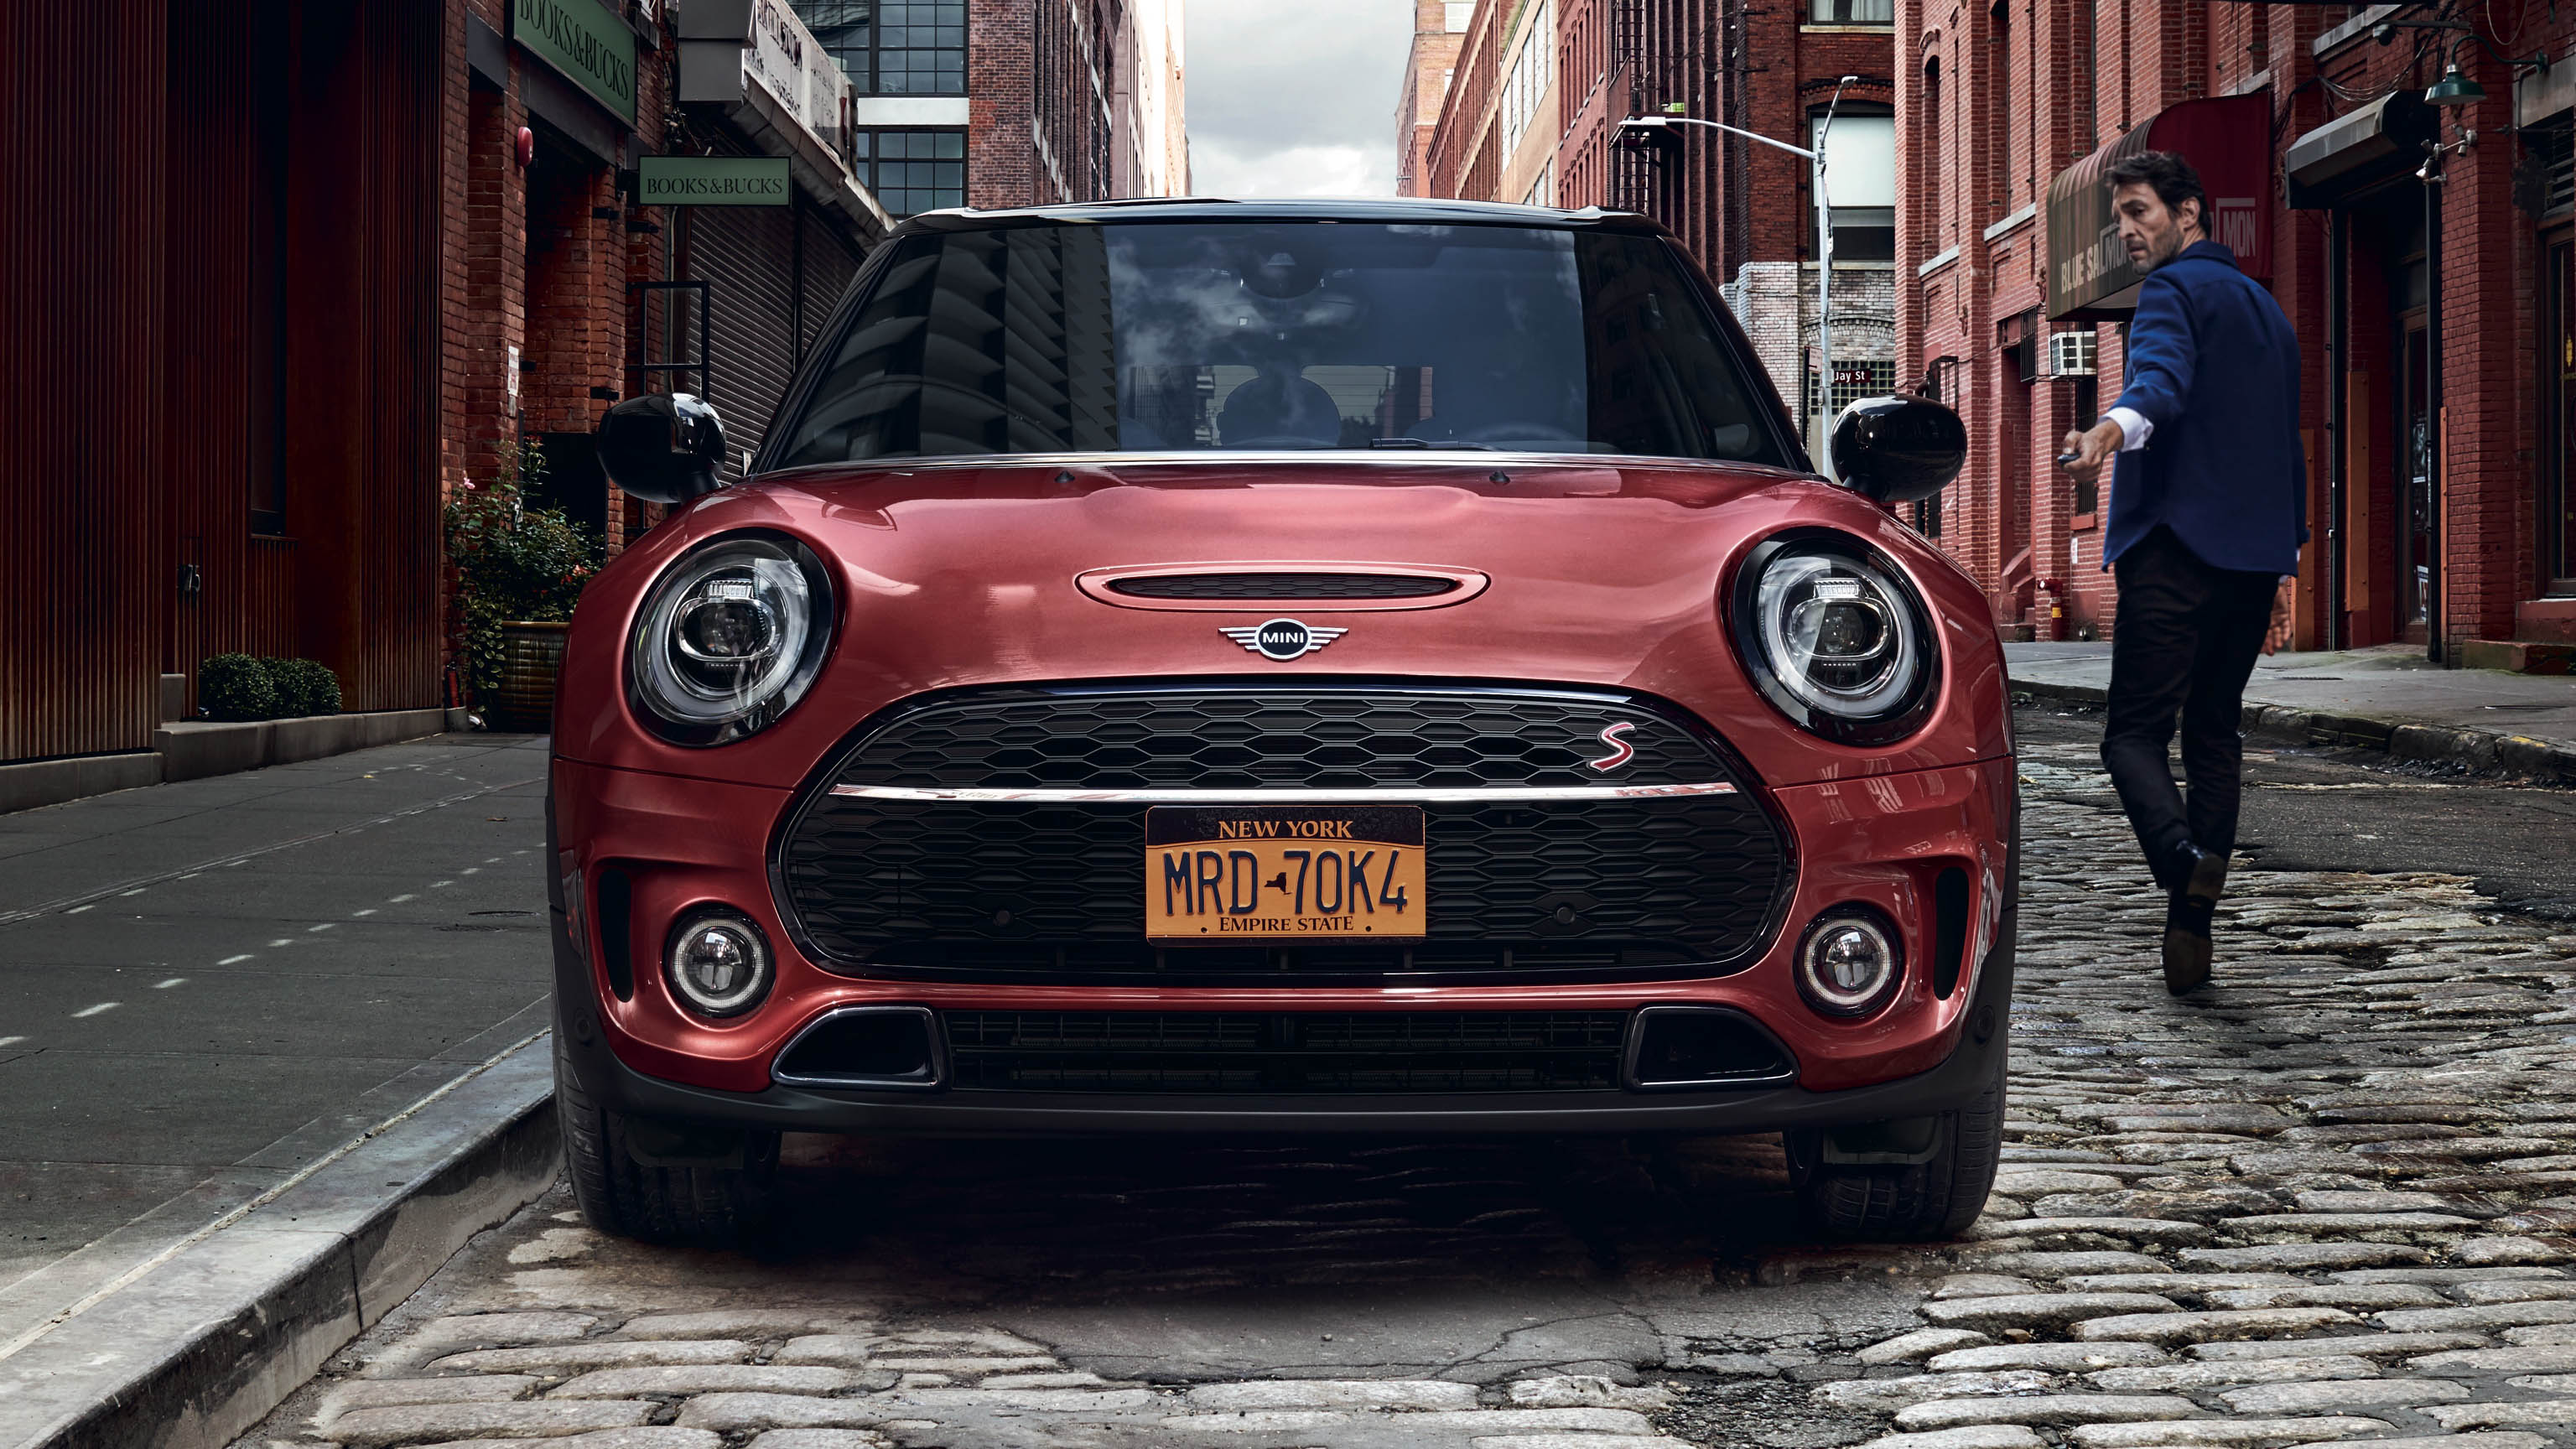 mini-clubman-highlights-front-view-wide